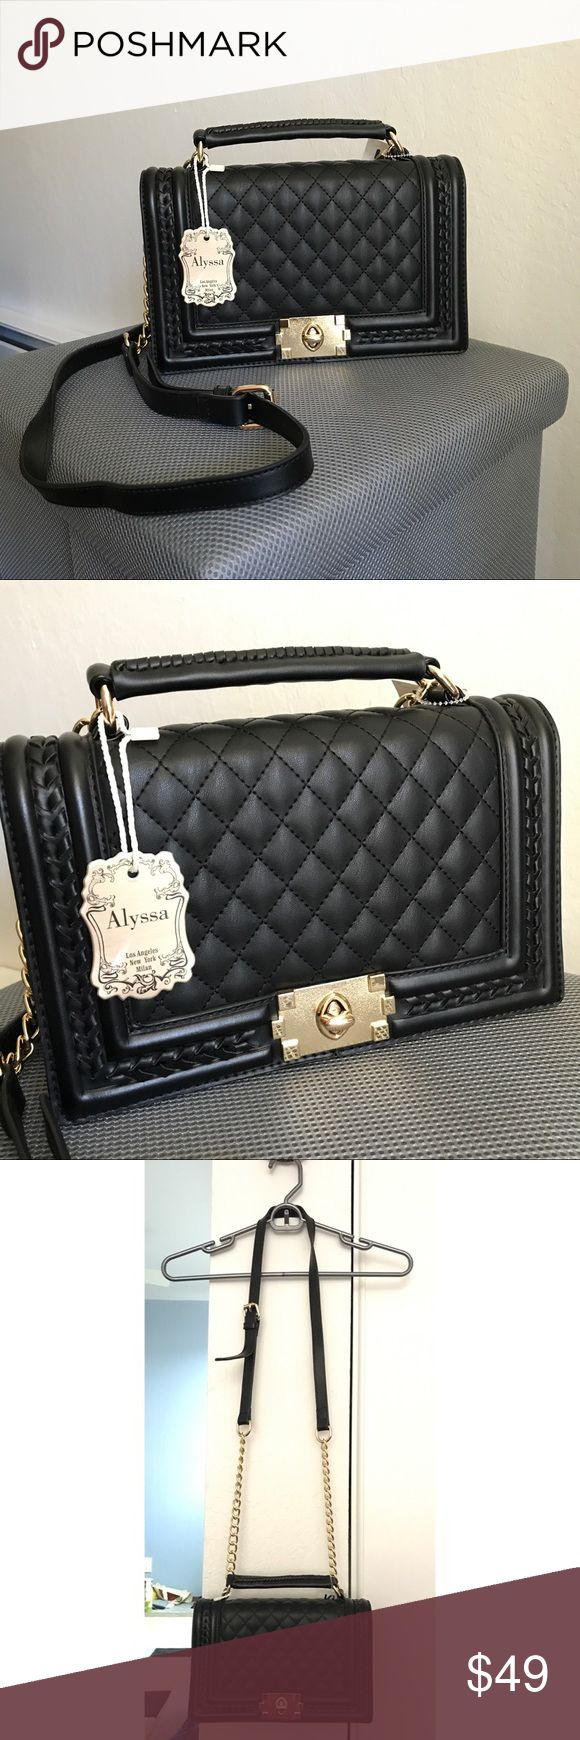 Designer Dupe Black Faux Leather Boy Bag Style Get that expensive designer look for way less with this Chanel-esque bag that has similar style to the iconic boy bag. Made with faux leather material and has adjustable but non detachable strap. Has gold-colored hardware and two interior pockets. FIRM PRICE. NO TRADES. Alyssa Bags Crossbody Bags